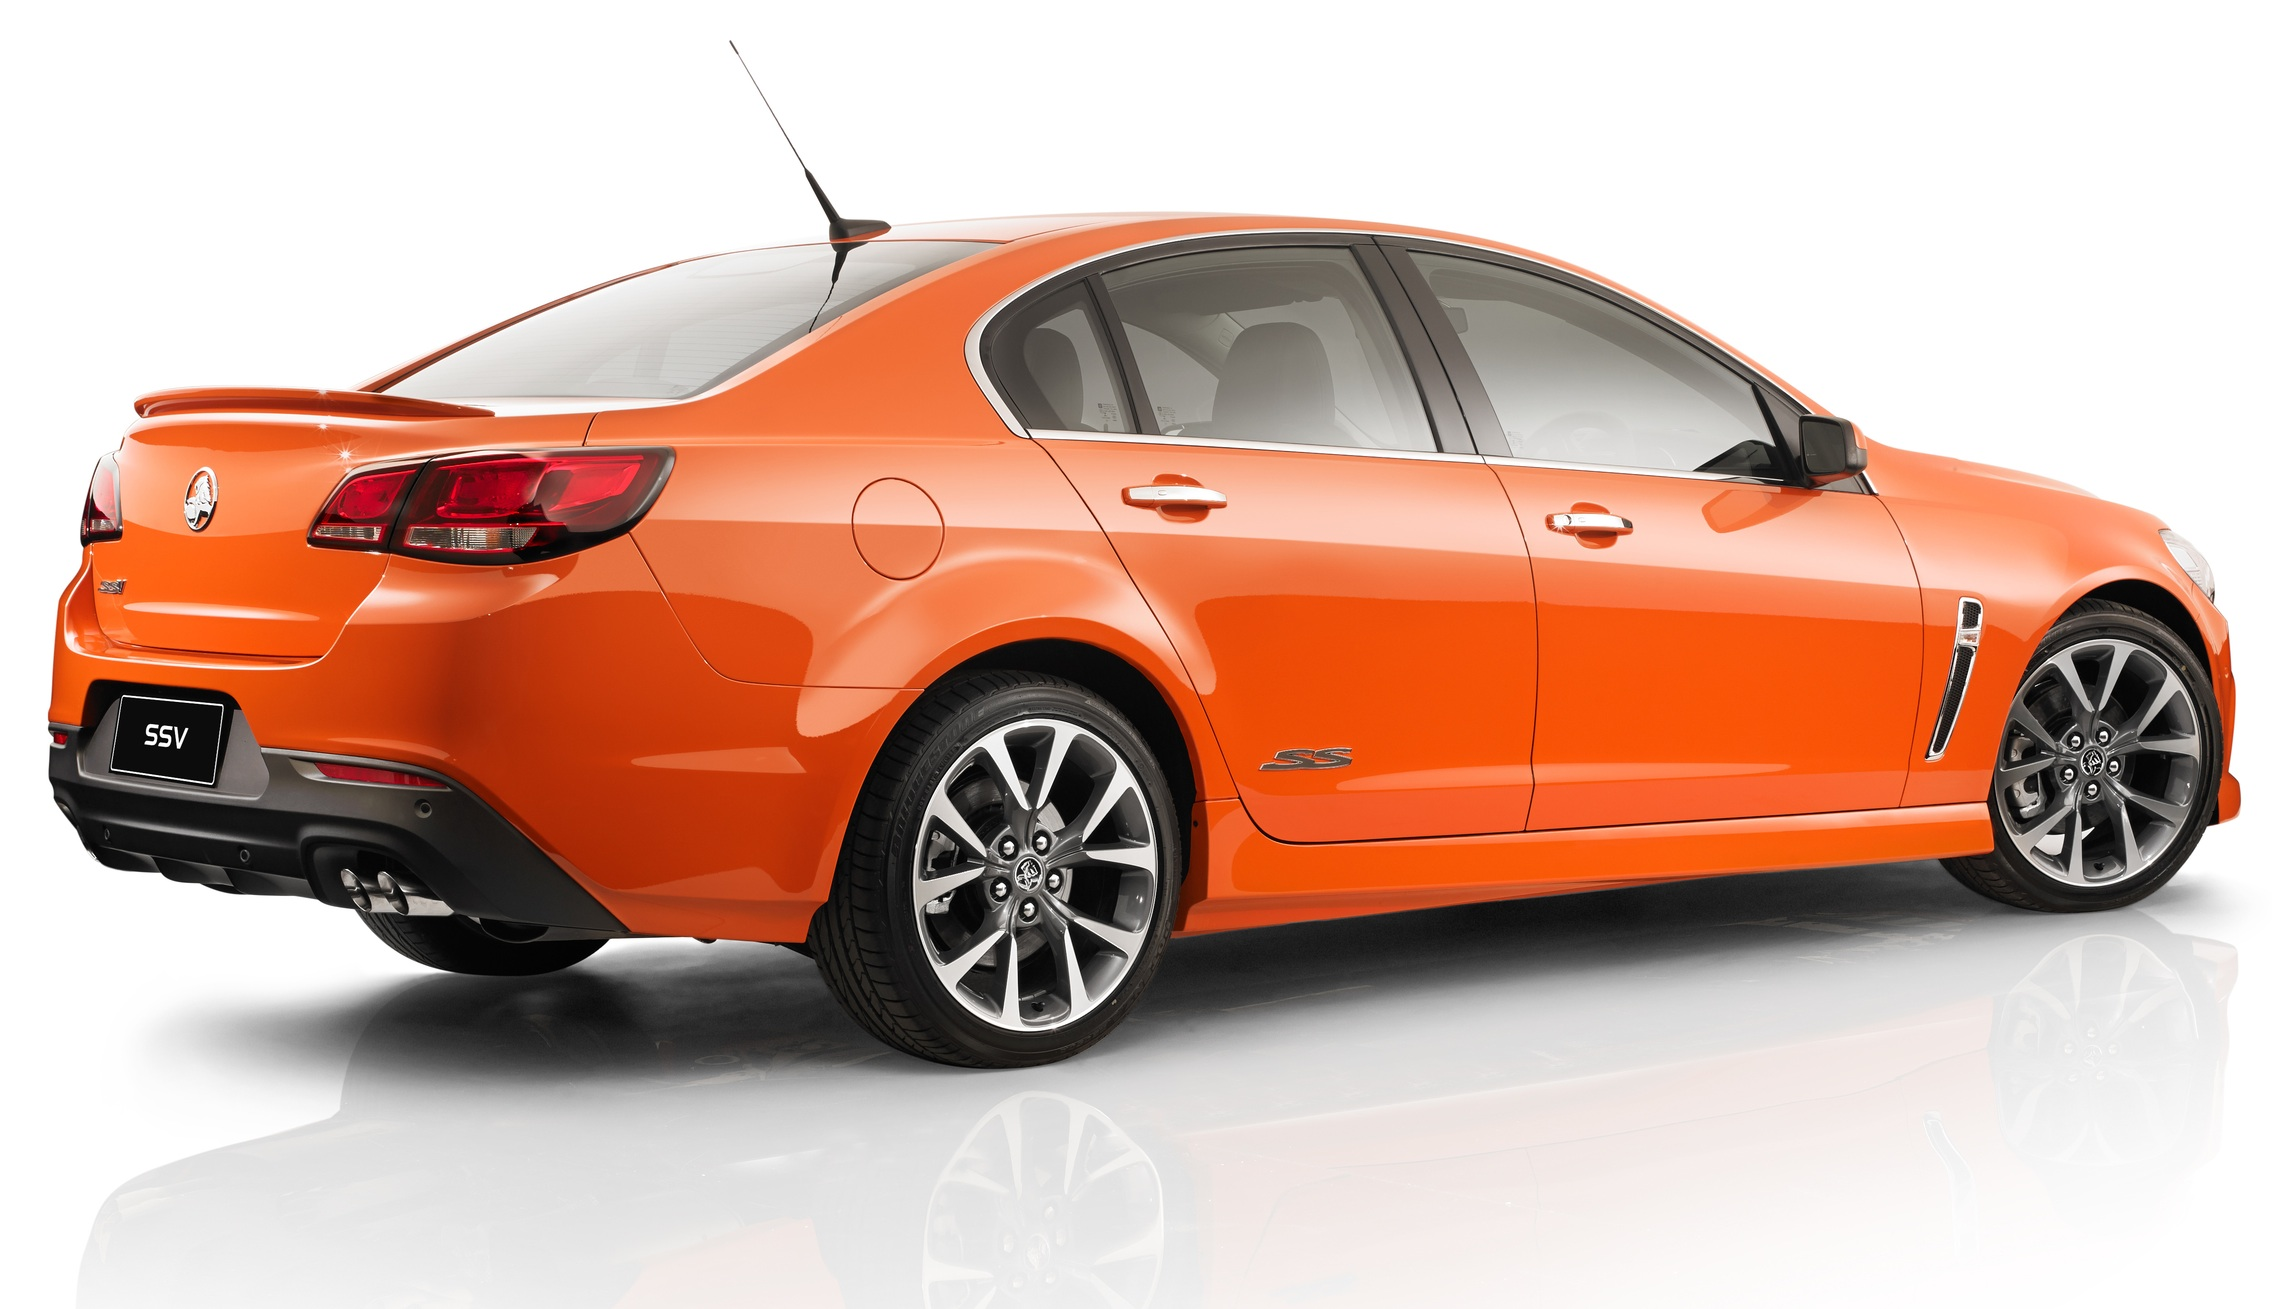 Holden VF Commodore: pricing and specifications - Photos (1 of 16)